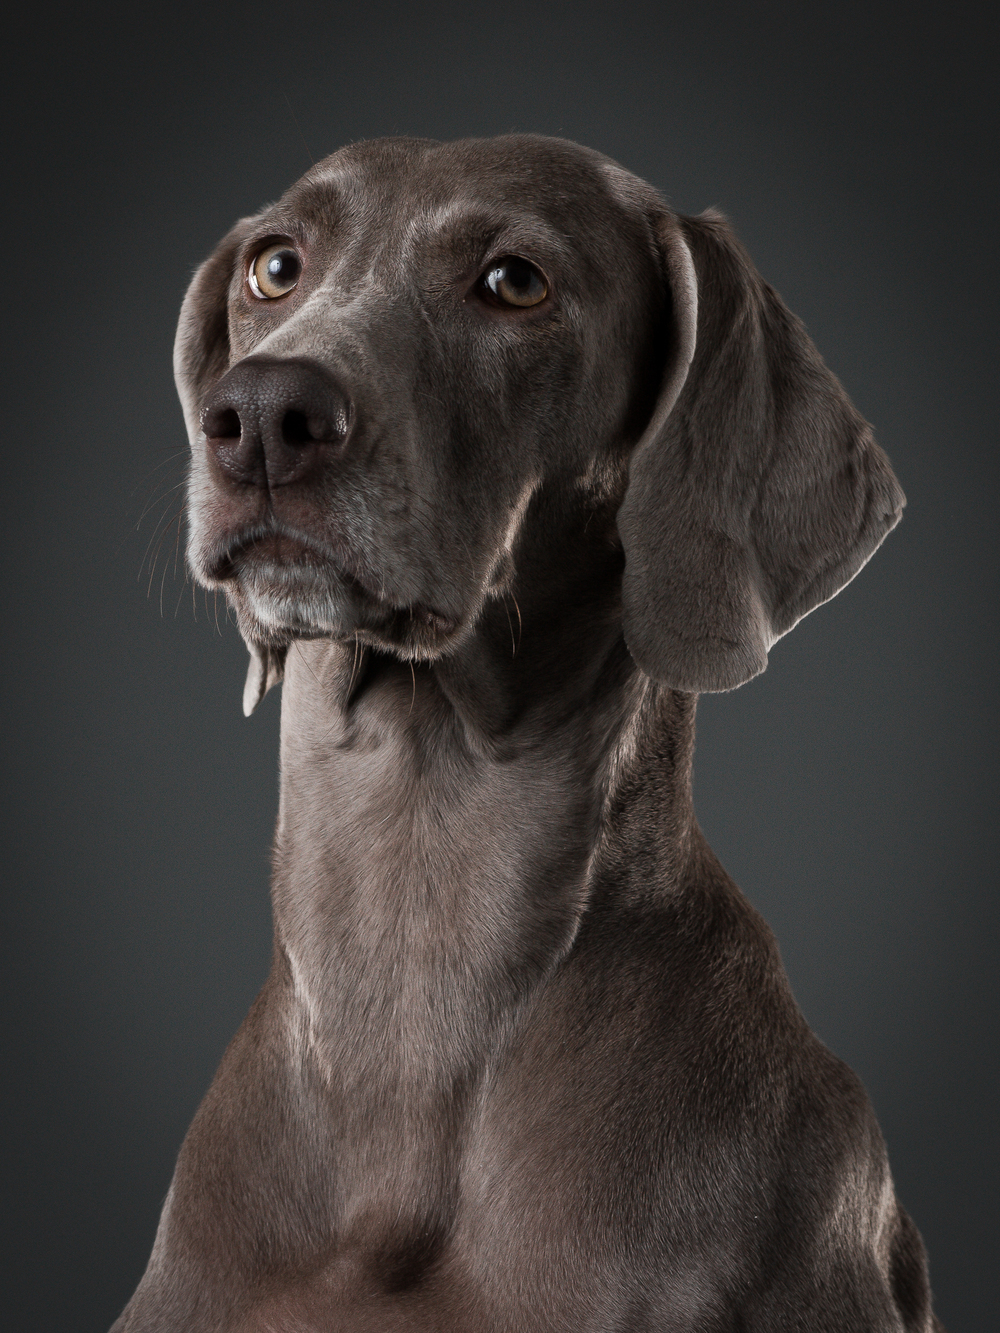 klaus-dyba-dog-photography-weimaraner